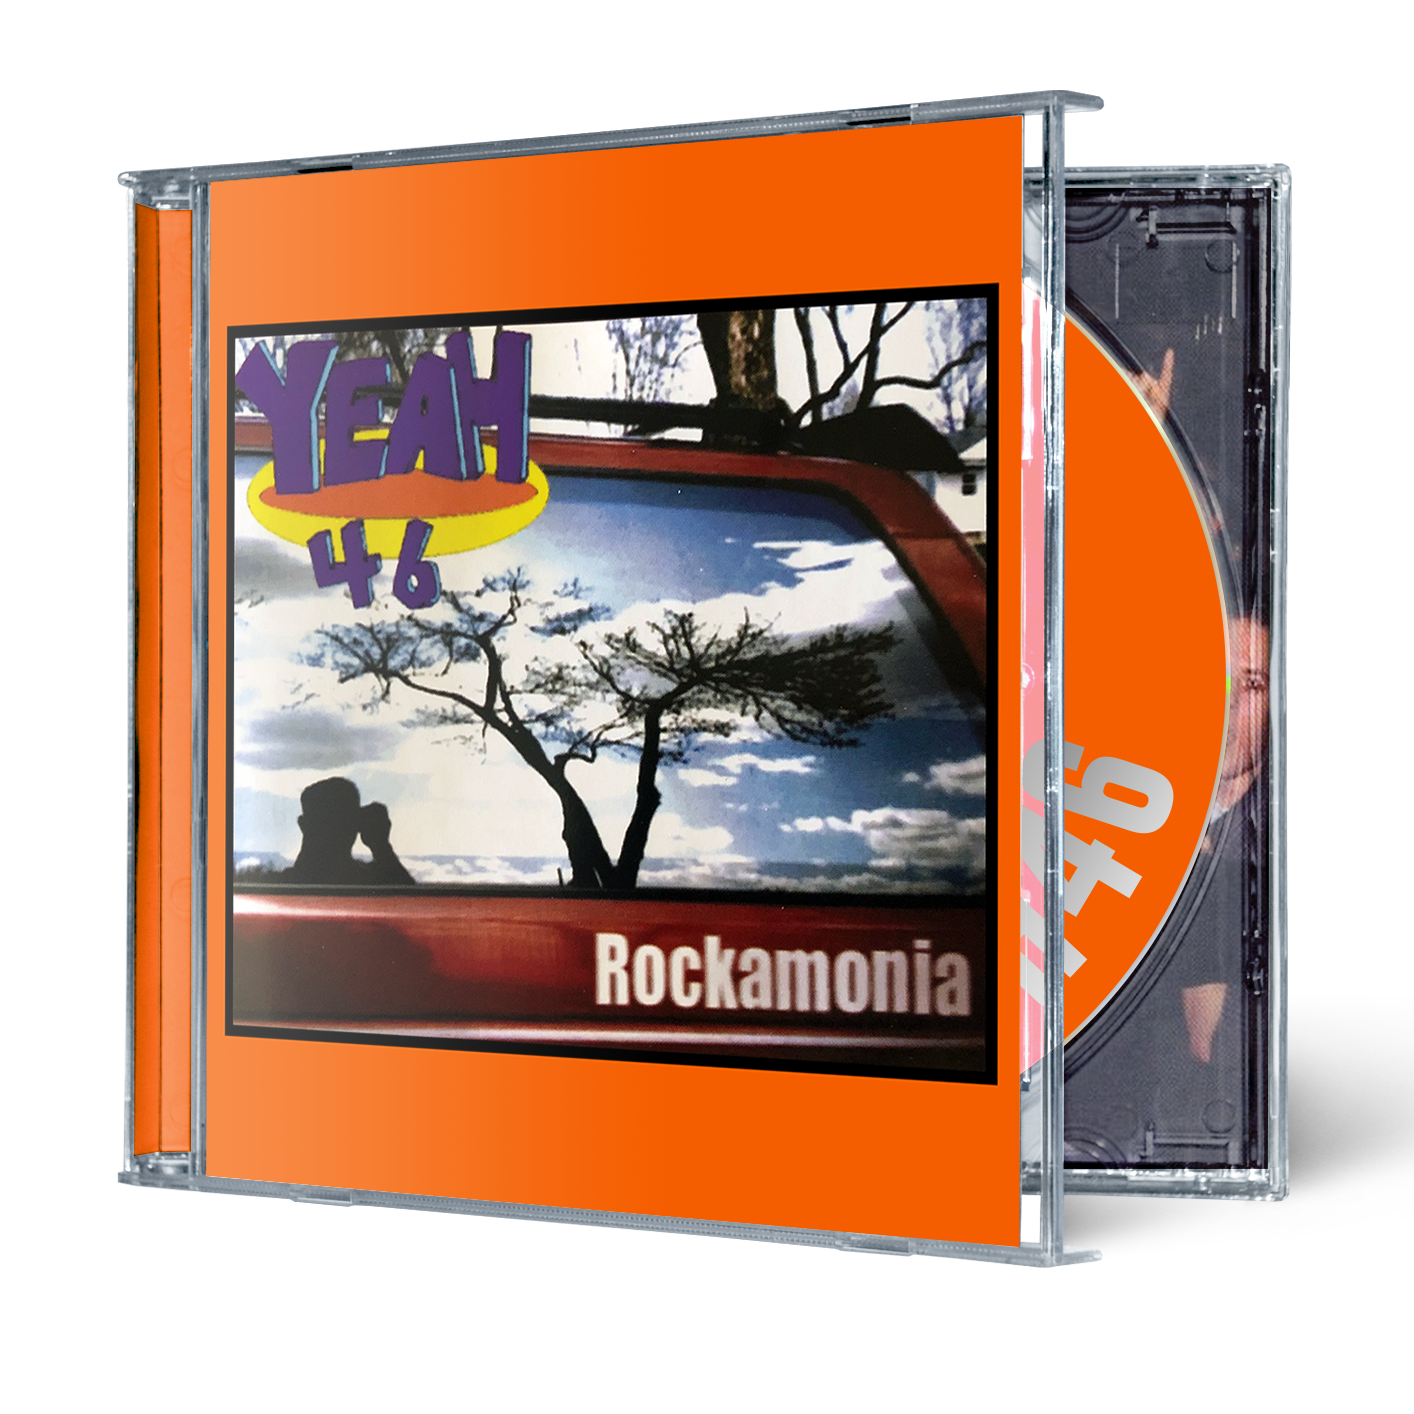 Rockamonia Hard Copy CD